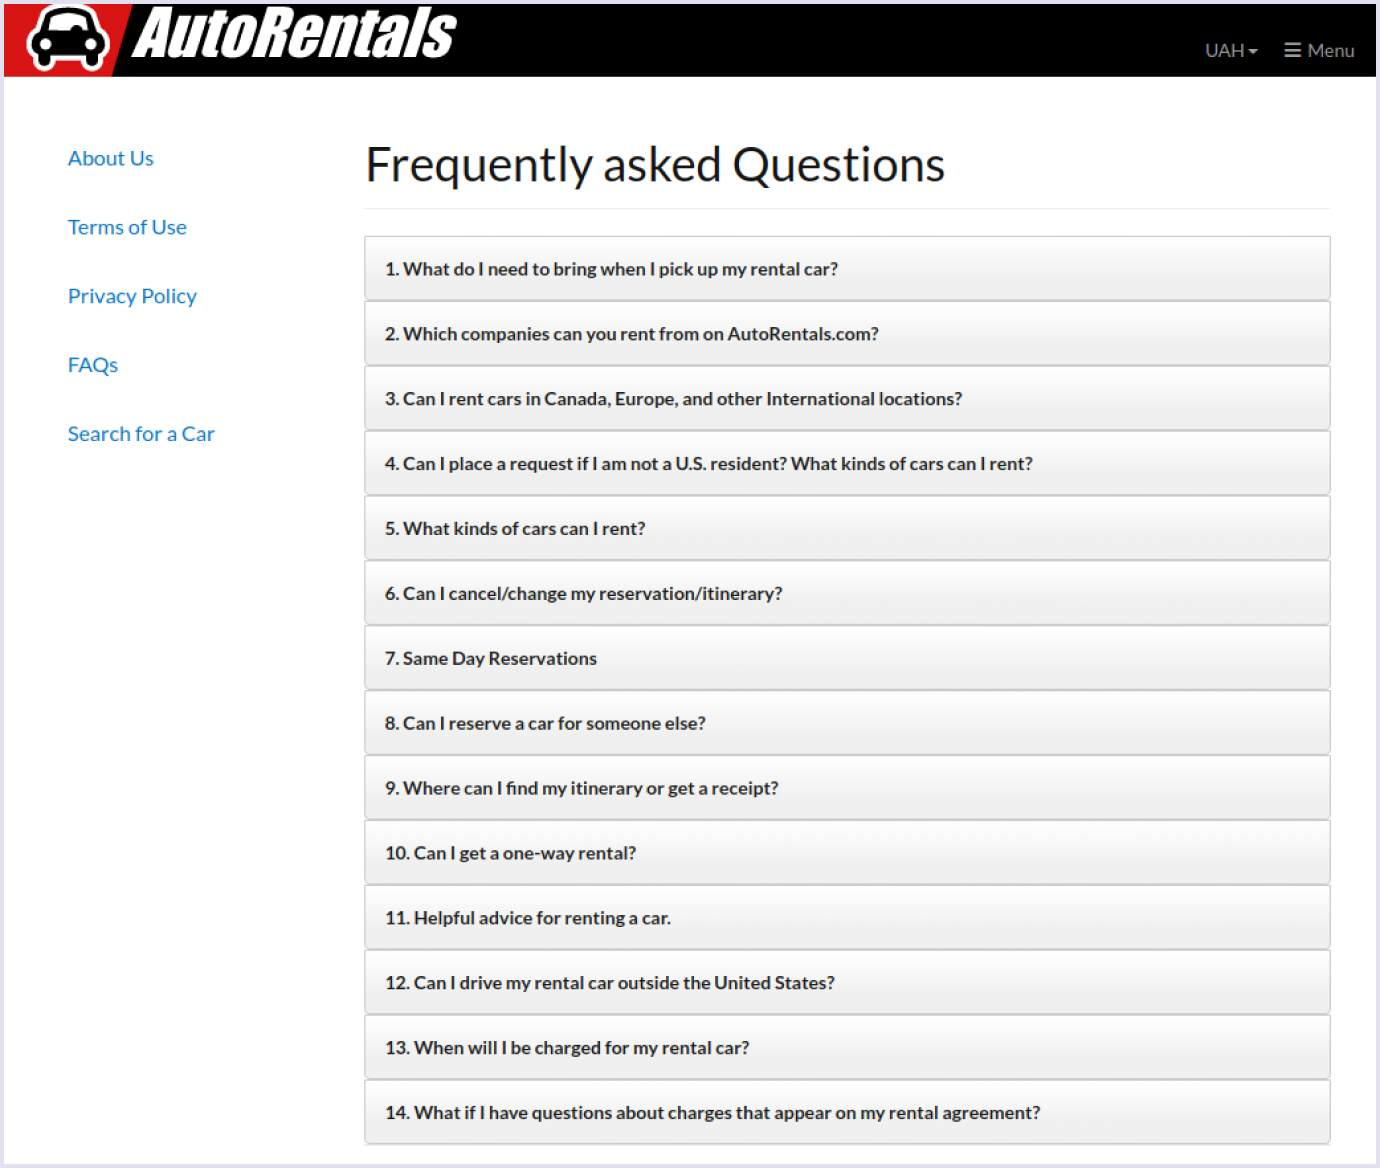 Frequently asked questions section on car rental website AutoRentals